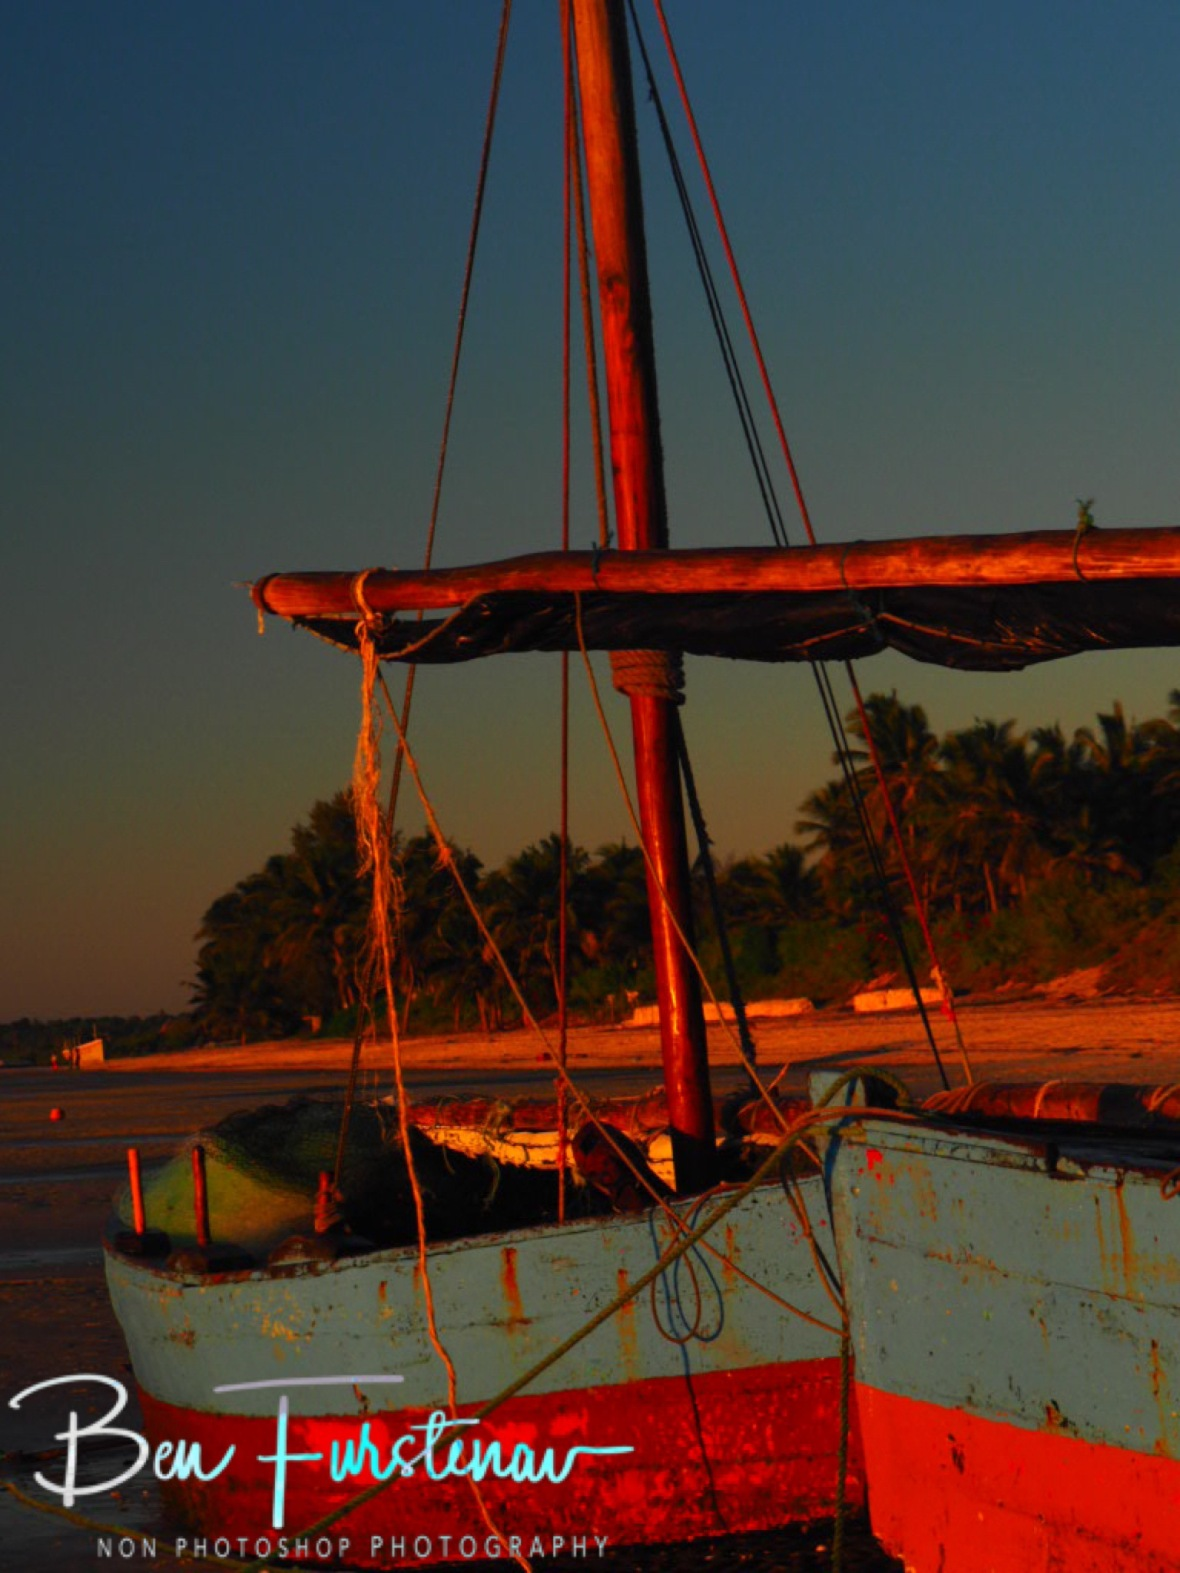 Dhow on dhow, Vilankulo, Mozambique